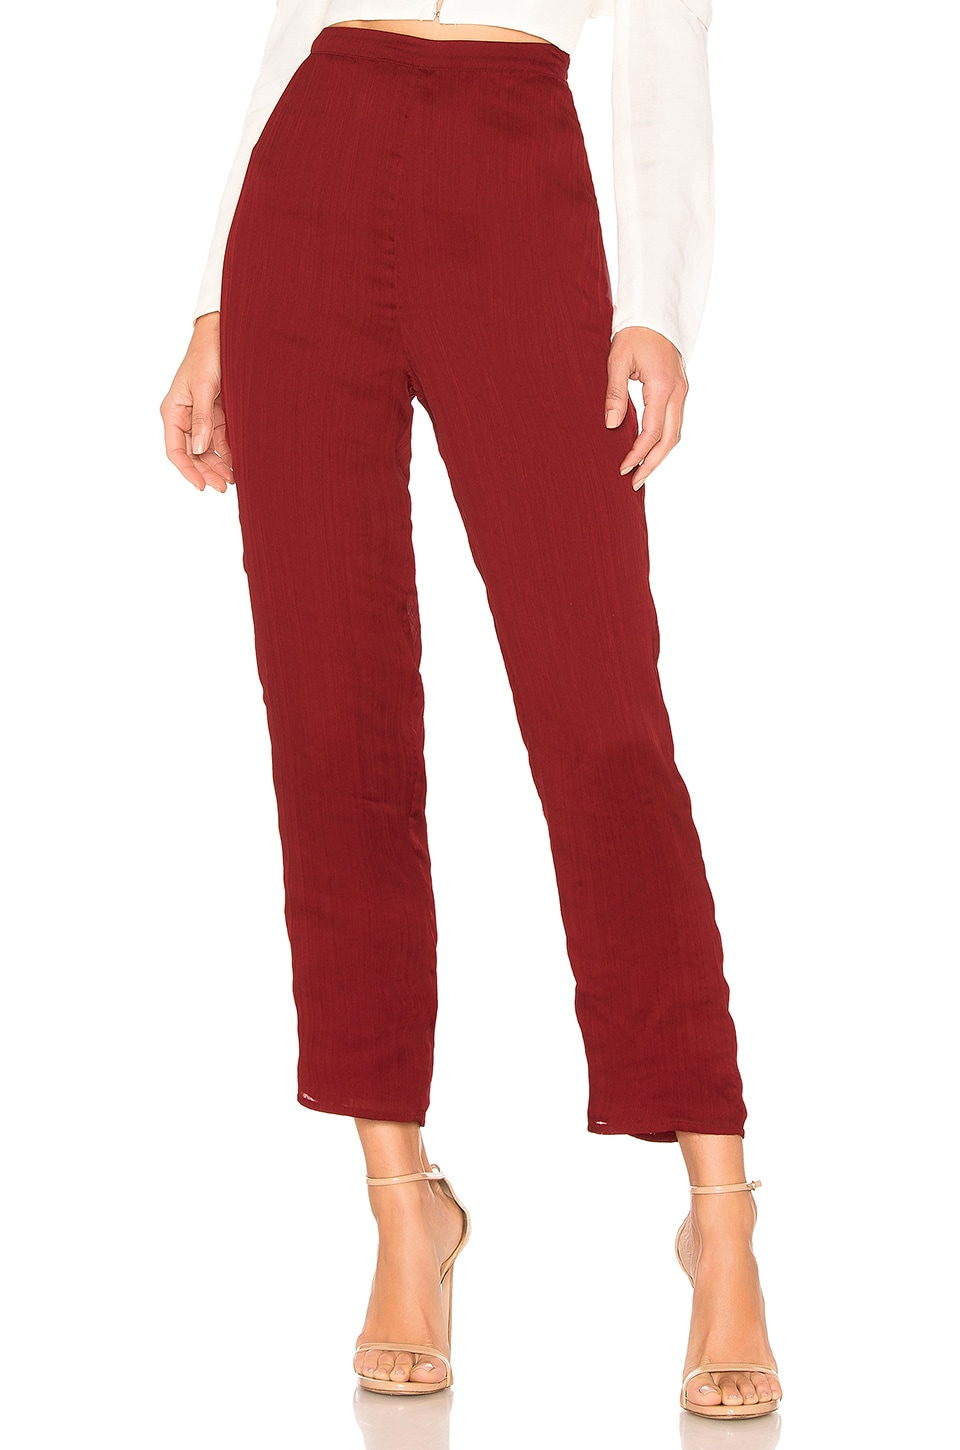 House of Harlow 1960 X REVOLVE Kate Pant in Crimson Red